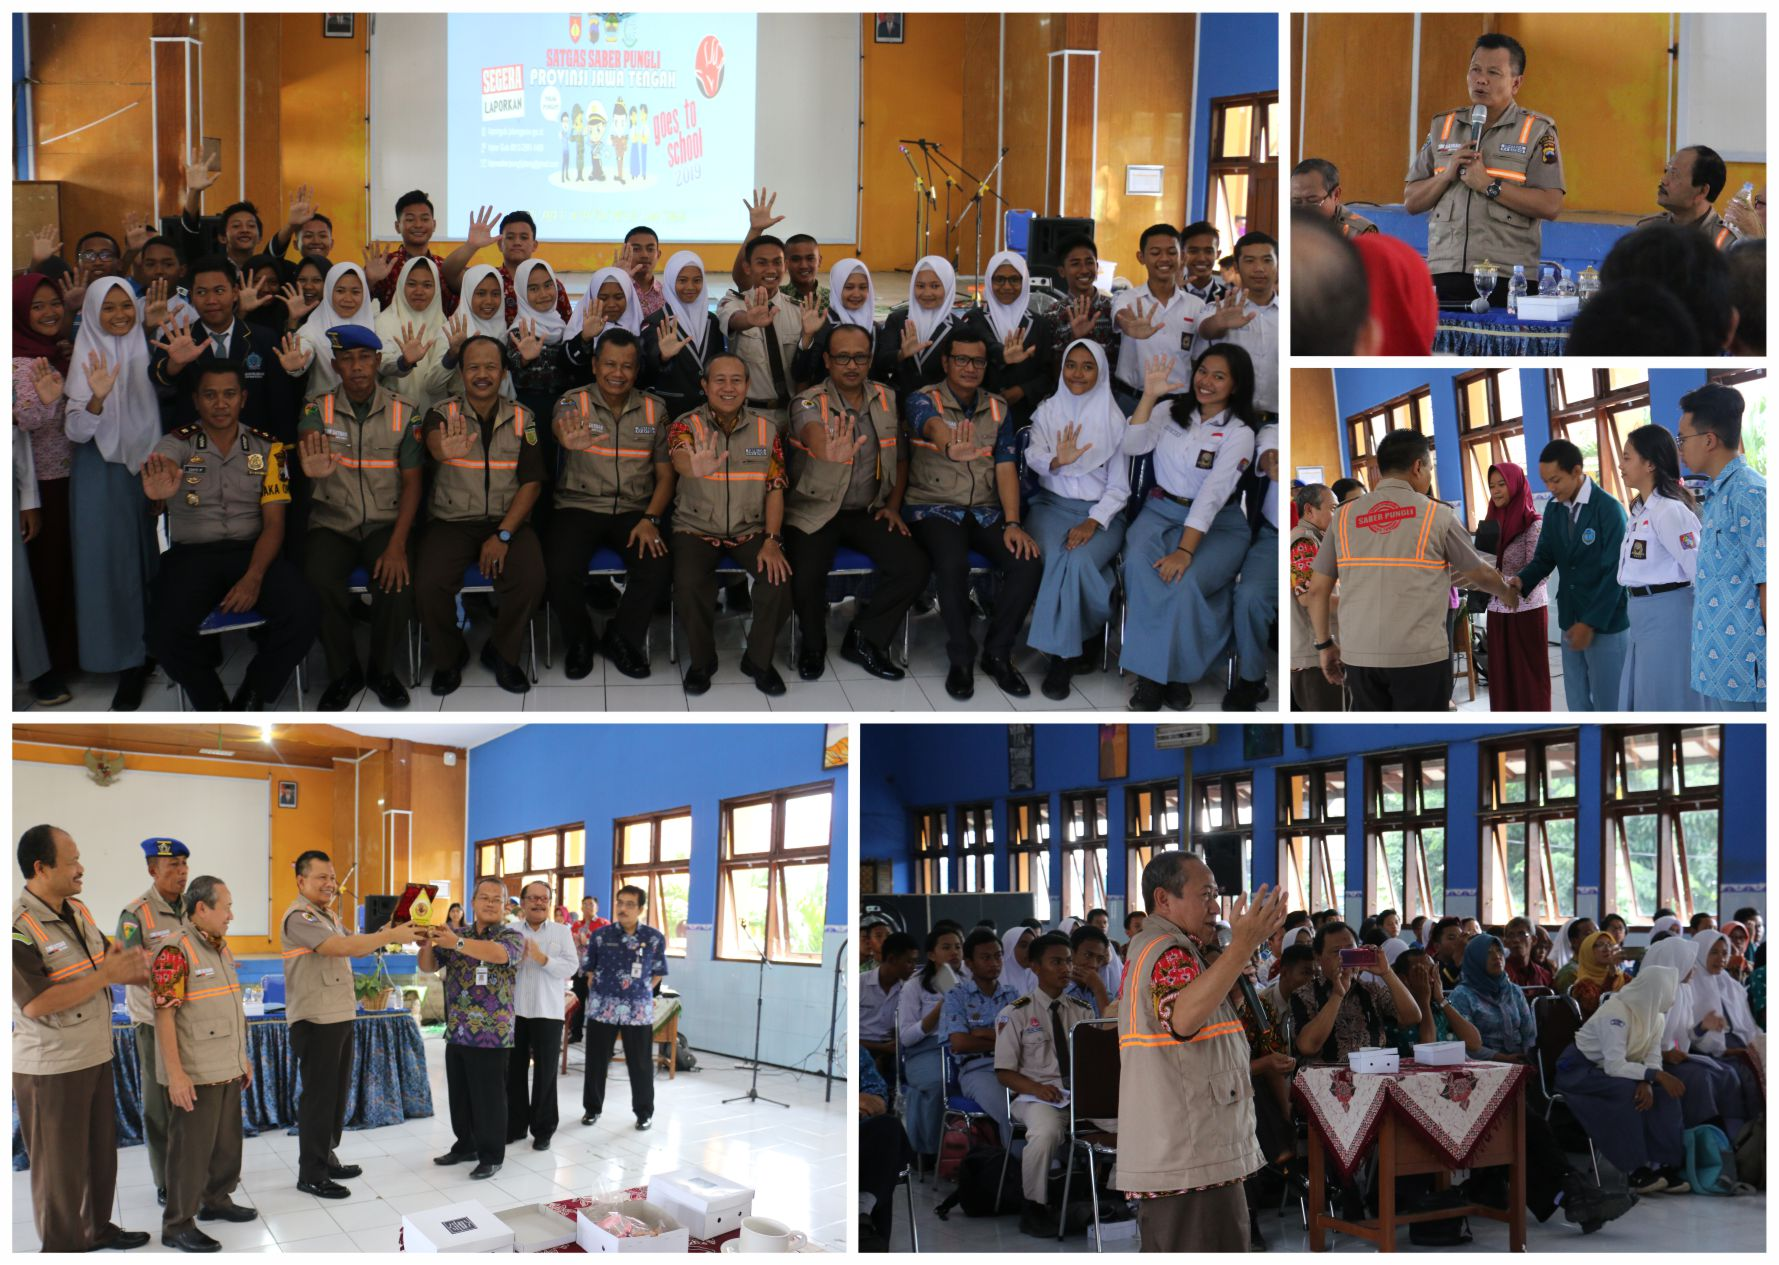 SABER PUNGLI GOES TO SCHOOL DI SMAN 2 UNGARAN